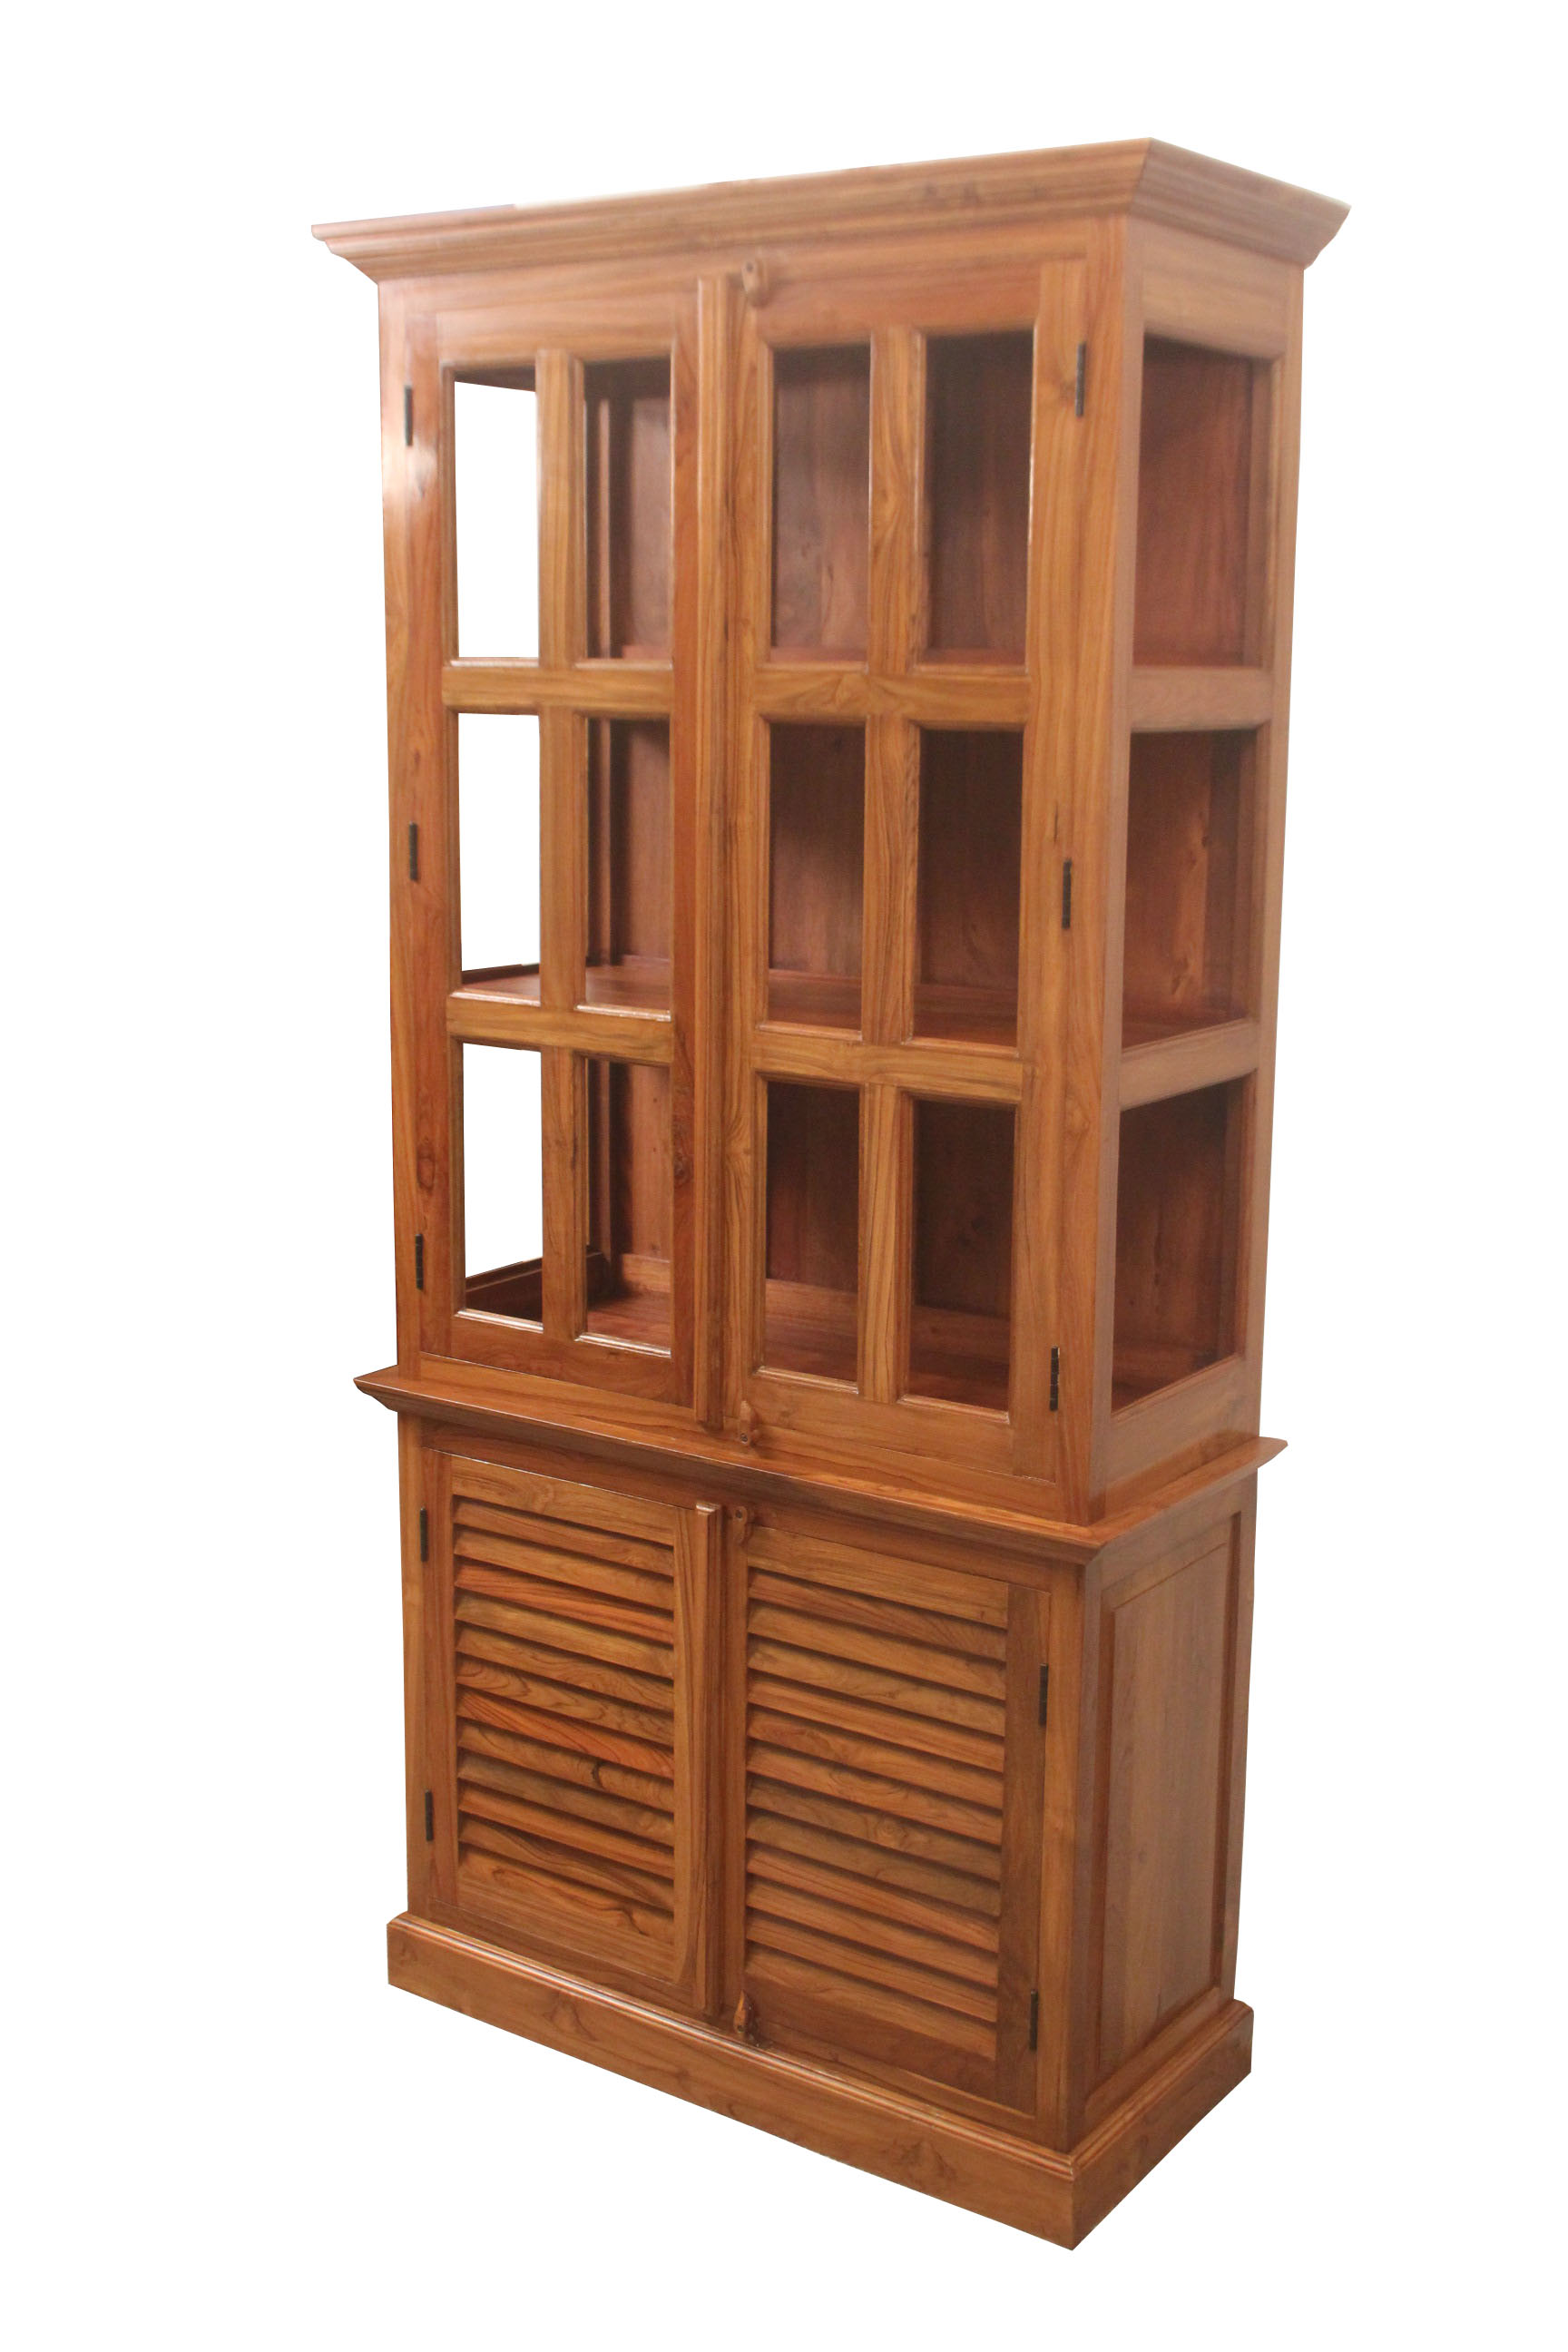 Buy Stylish Wooden Bookshelves in Mumbai